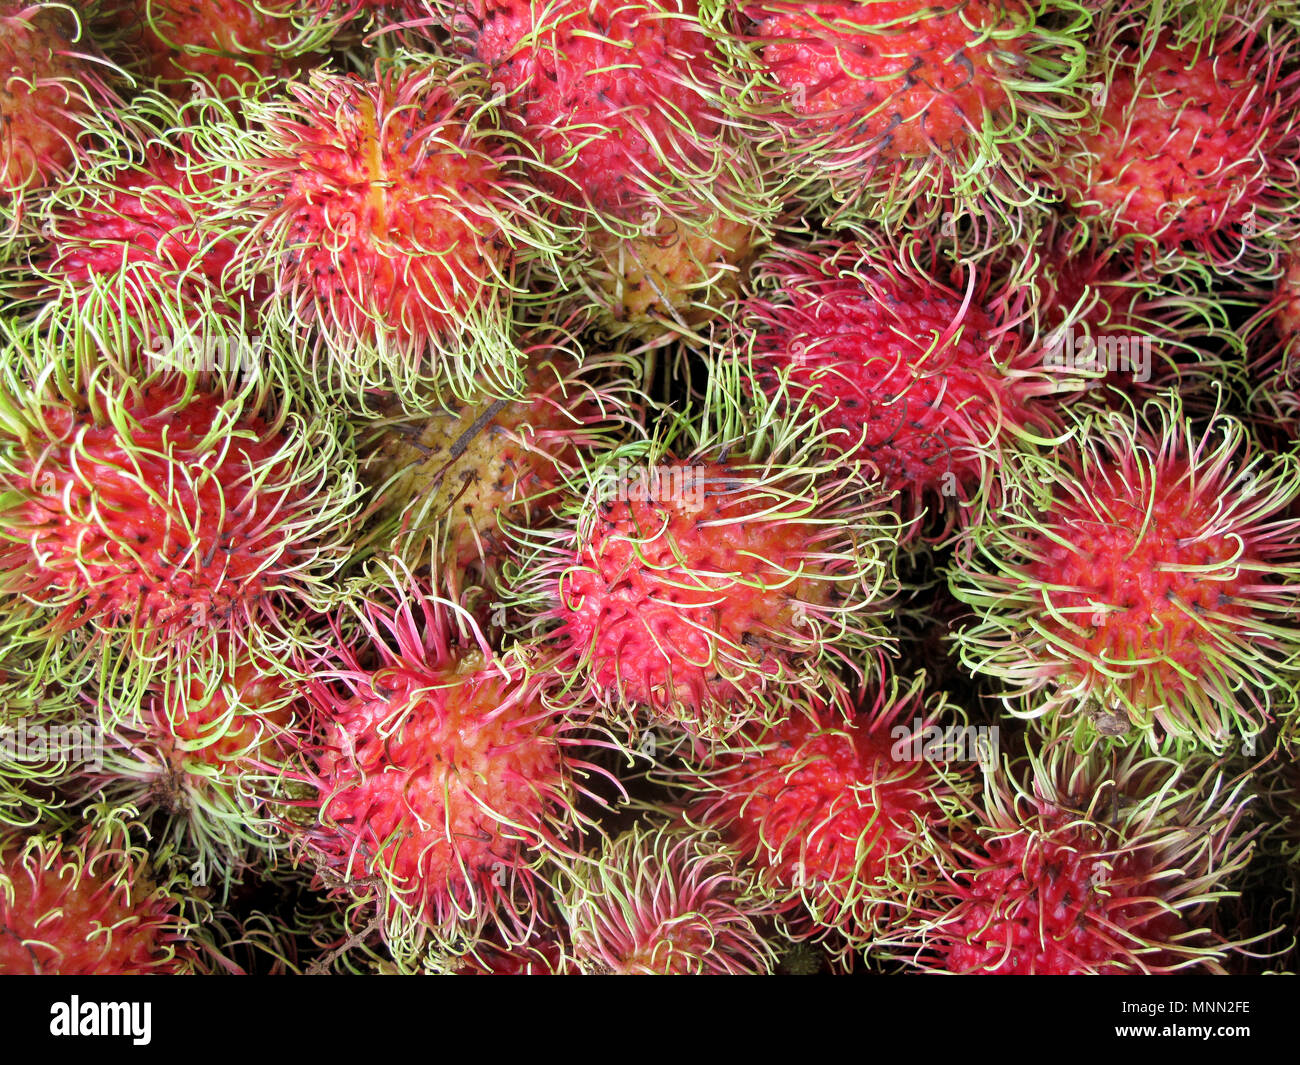 Rambutan, Nephelium Lappaceum, the lychee like fruit with long hooked spines, Costa Rica, Central America - Stock Image